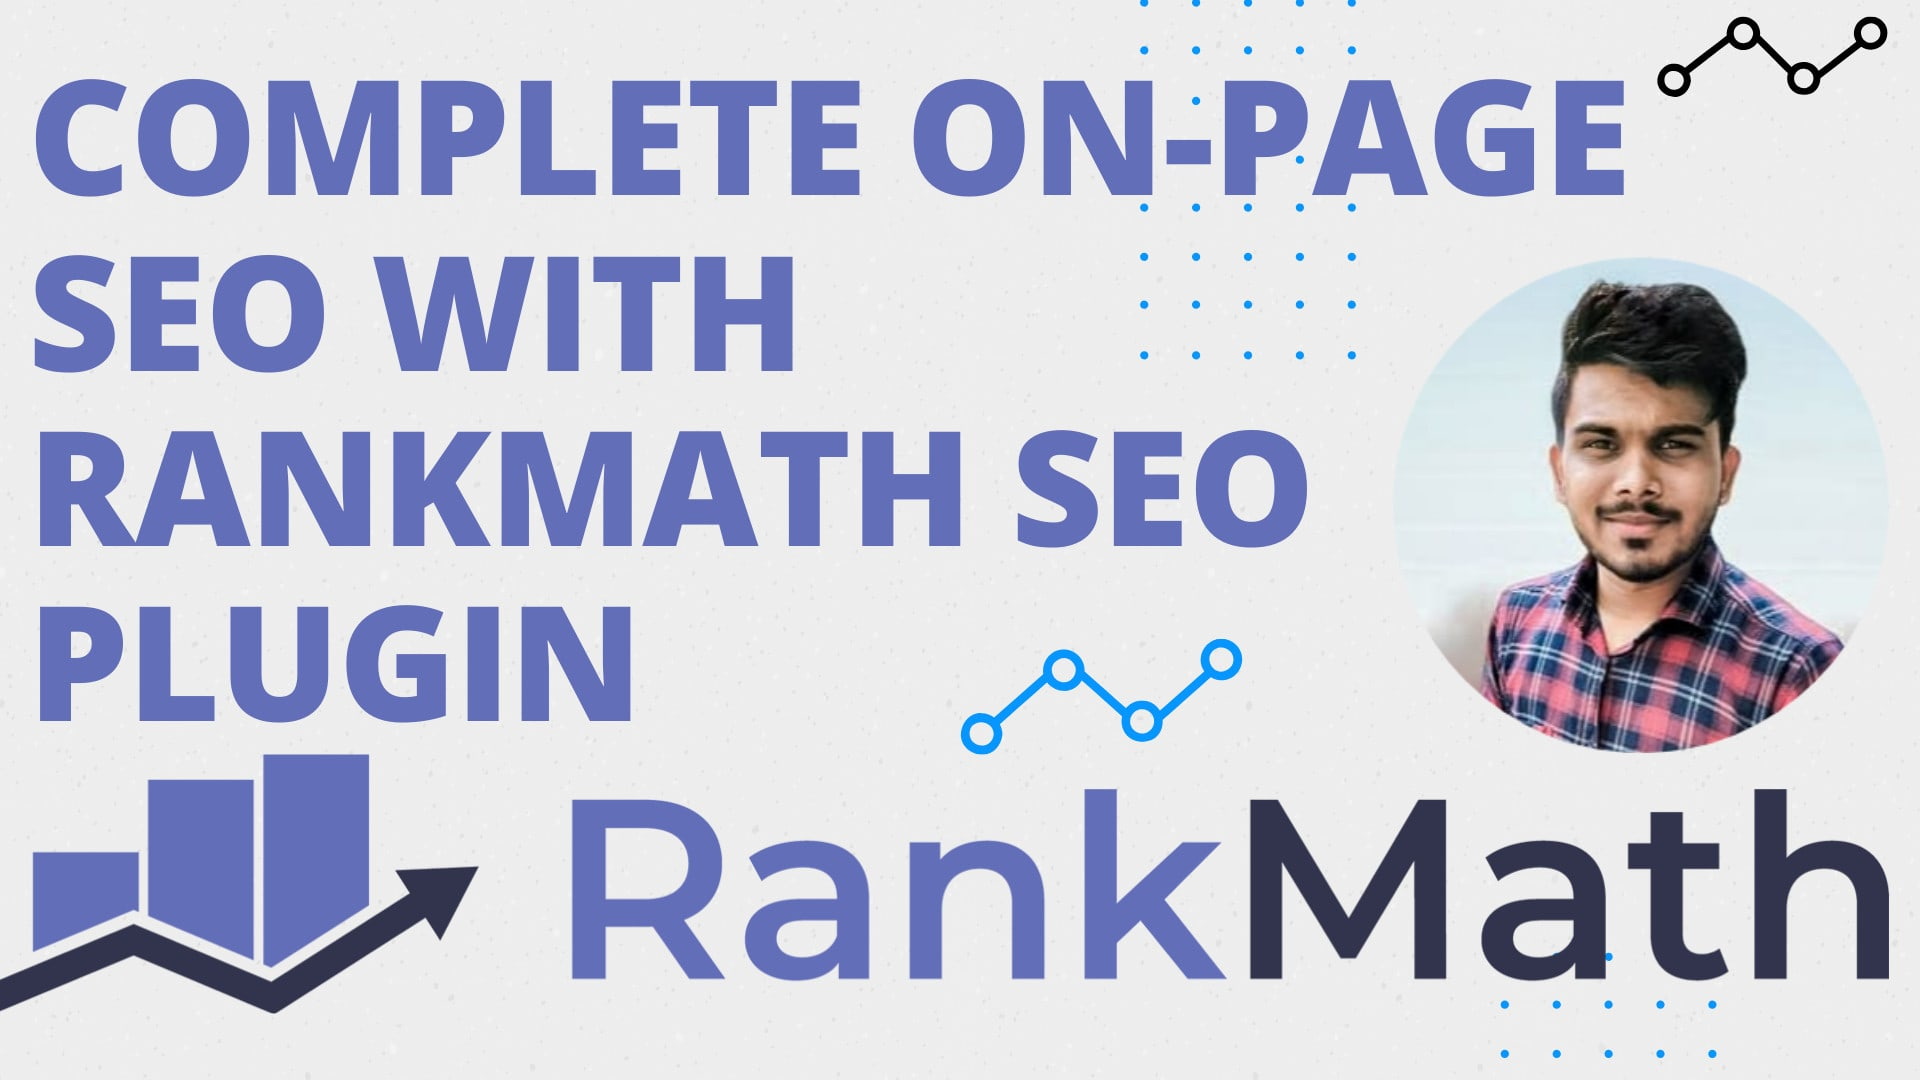 I will do onpage SEO for your wordpress website with rankmath plugin